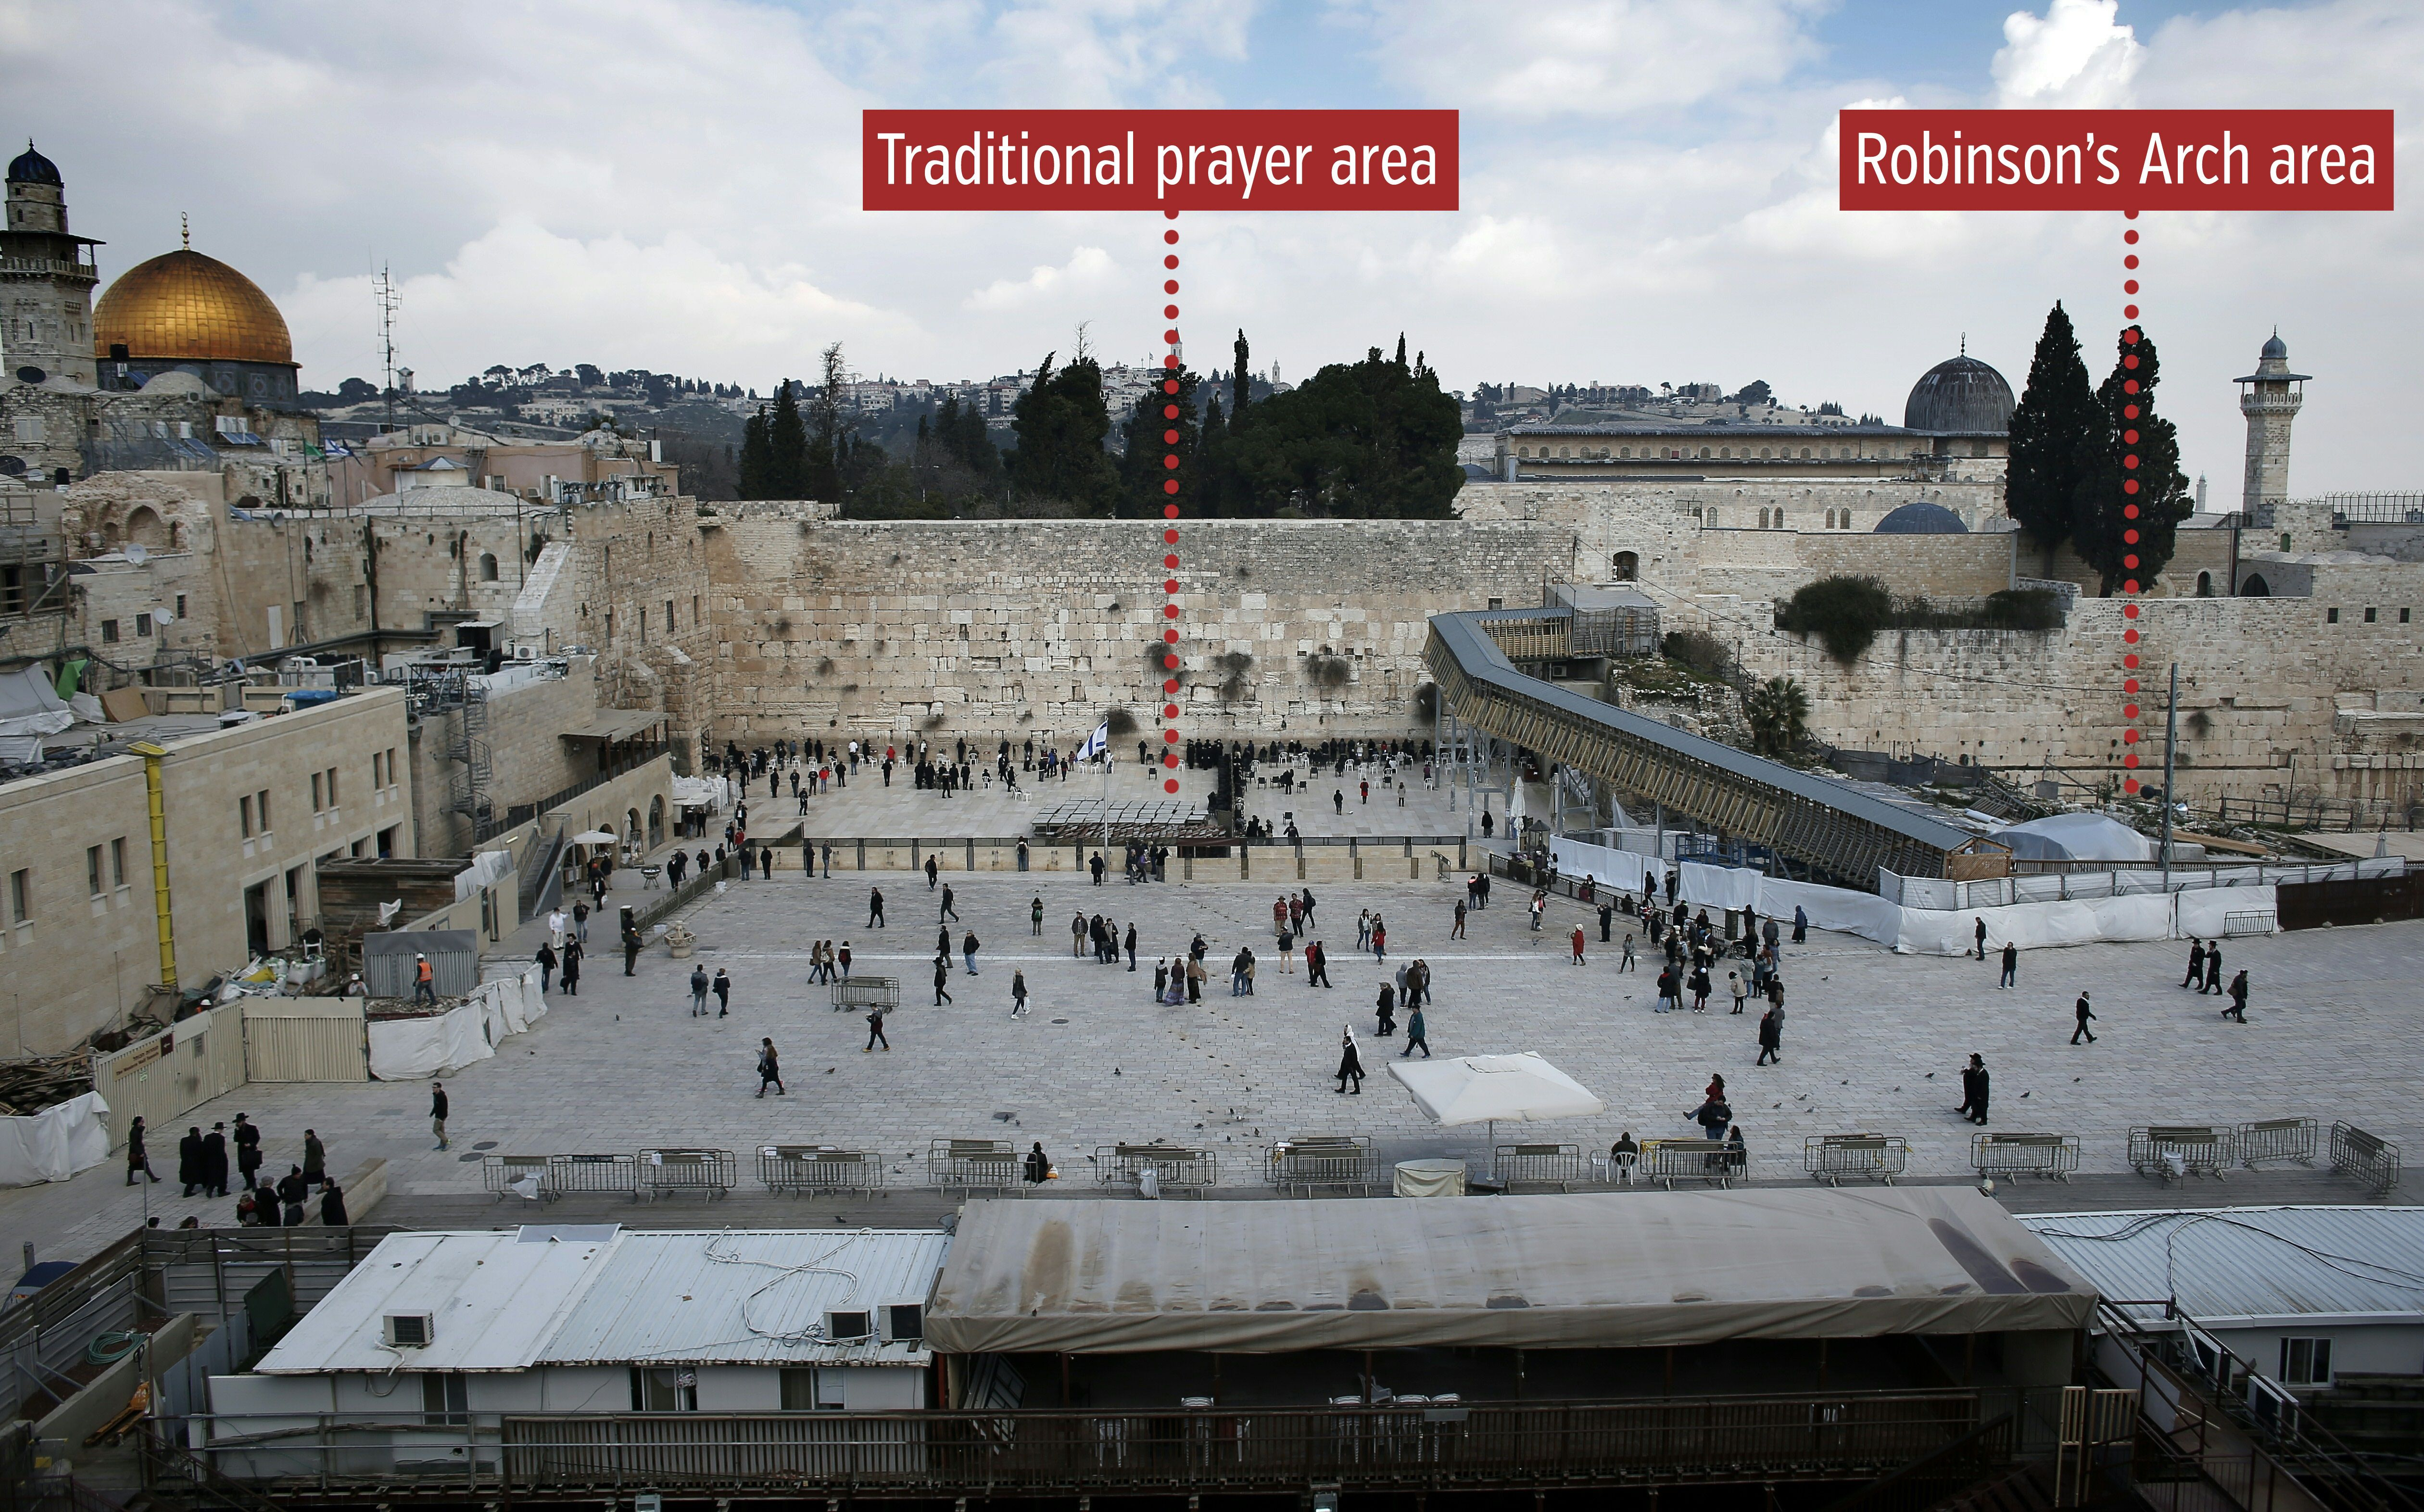 The split between the traditional prayer area and the proposed egalitarian area at Robinson's Arch.